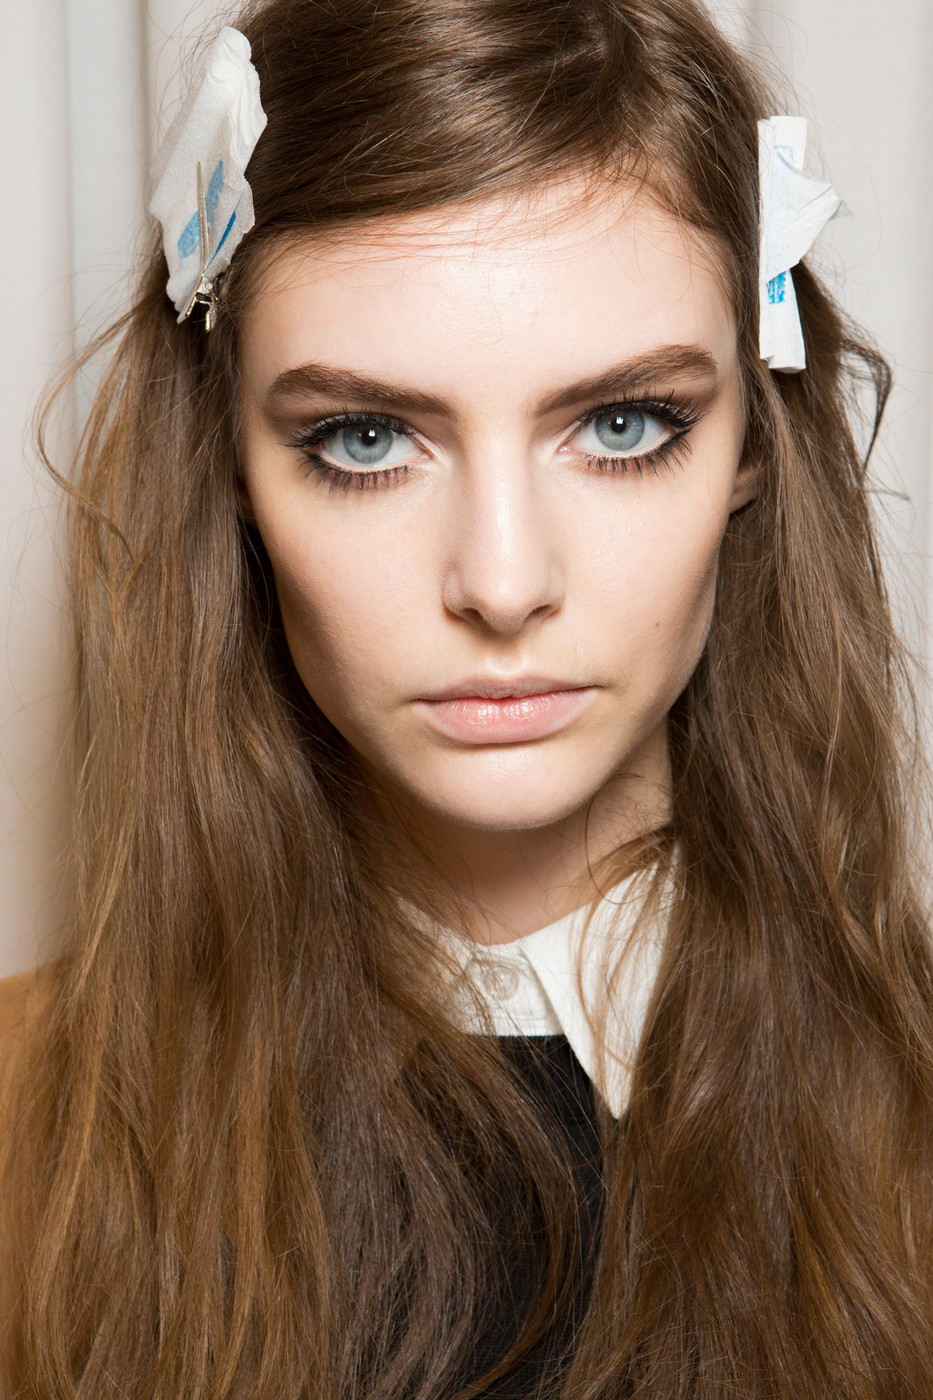 Gucci Fall 2014 Makeup Collection Gucci Fall 2014 Makeup Collection new foto